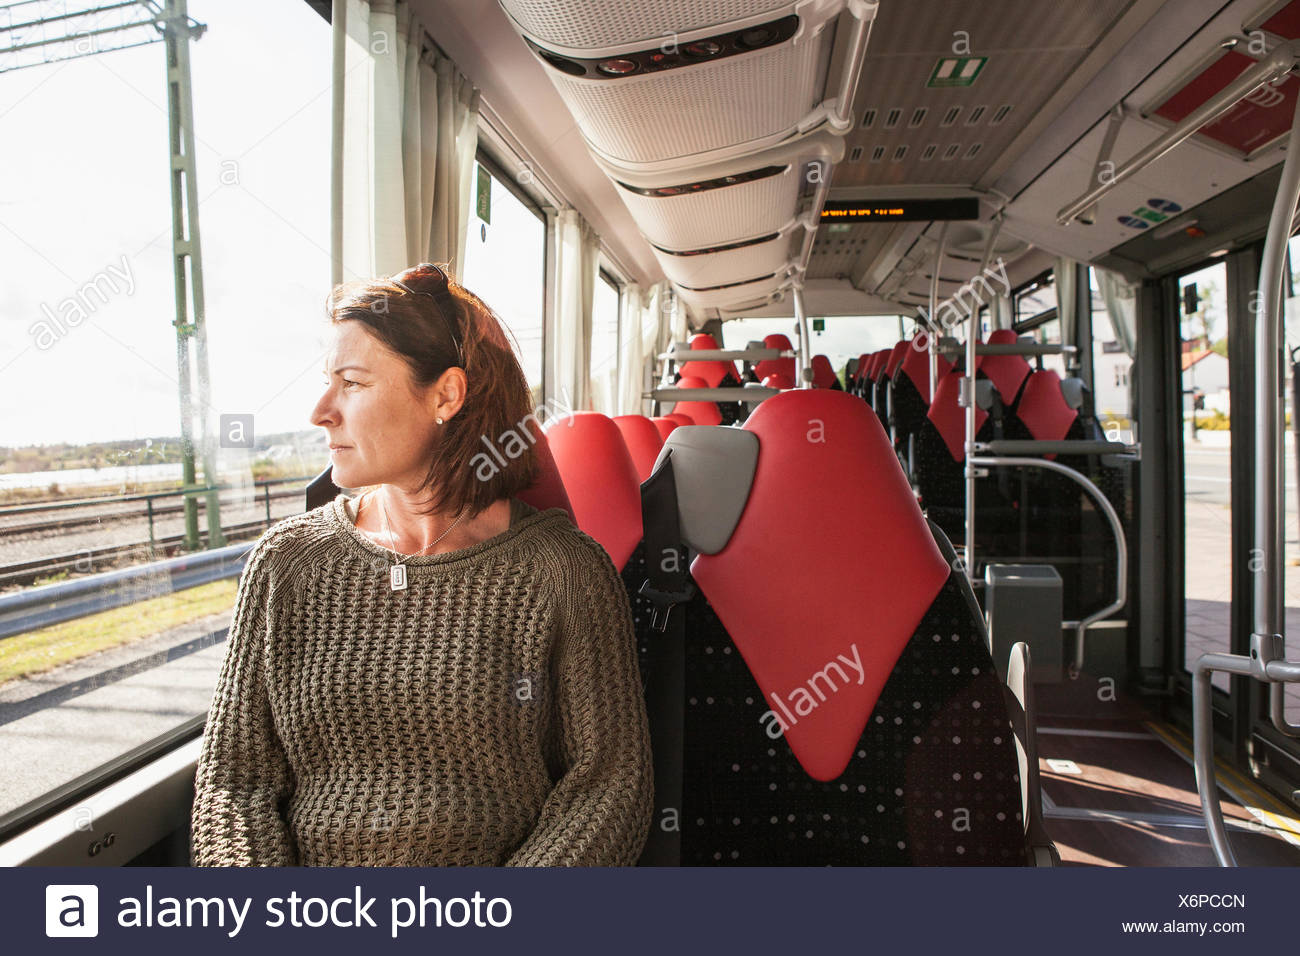 Woman sitting on a train - Stock Image